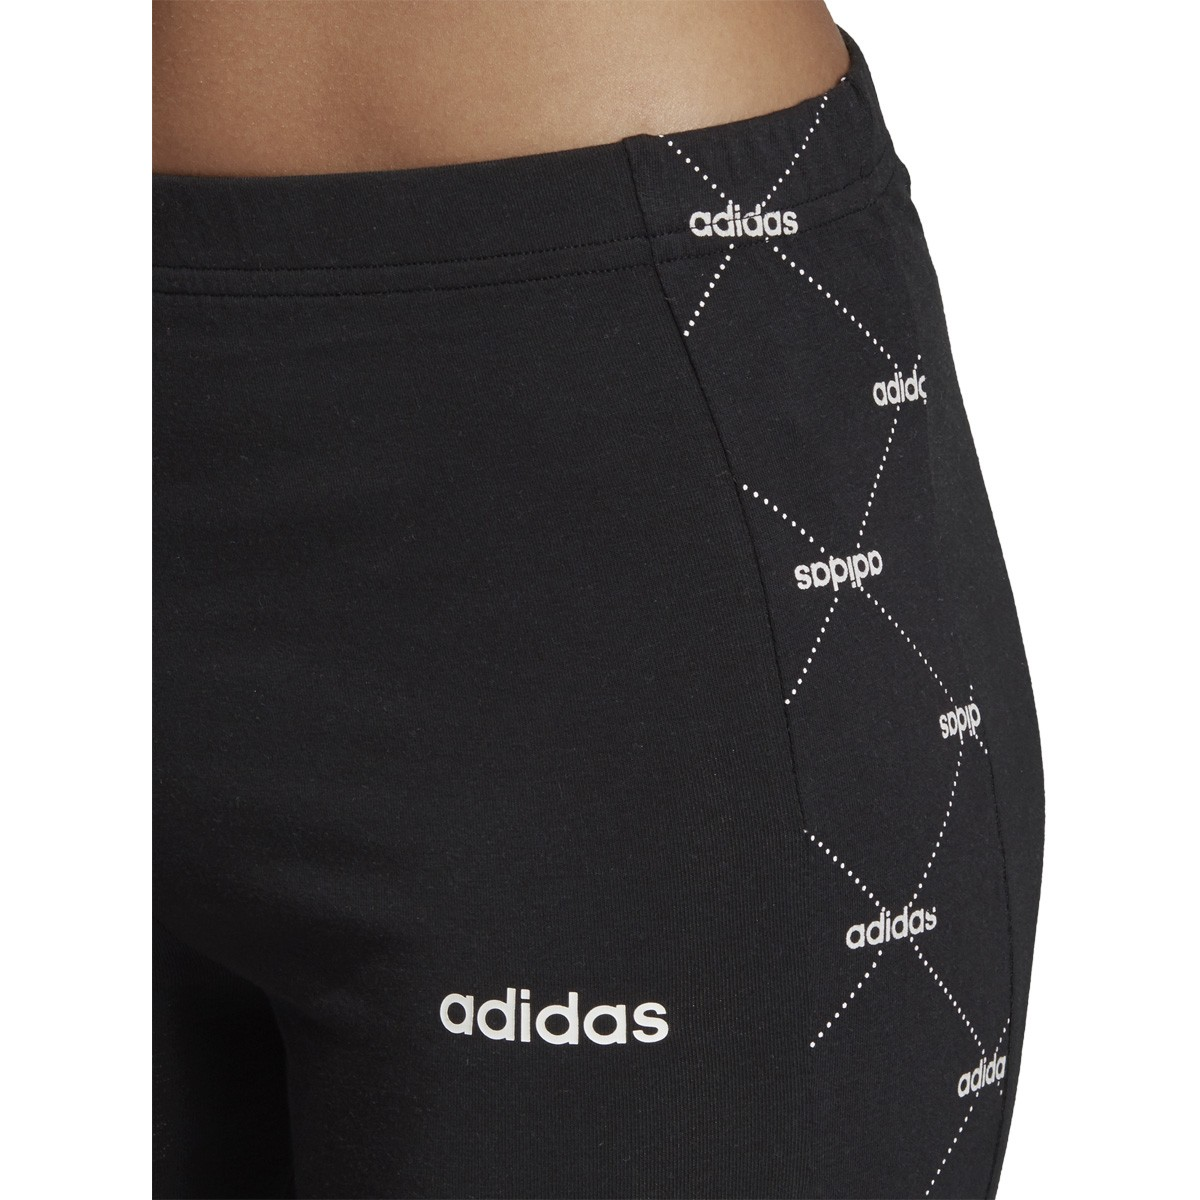 presenting new arrive premium selection COLLANT ADIDAS WOMEN'S CORE FAV TRAINING TIGHTS - ADIDAS ...